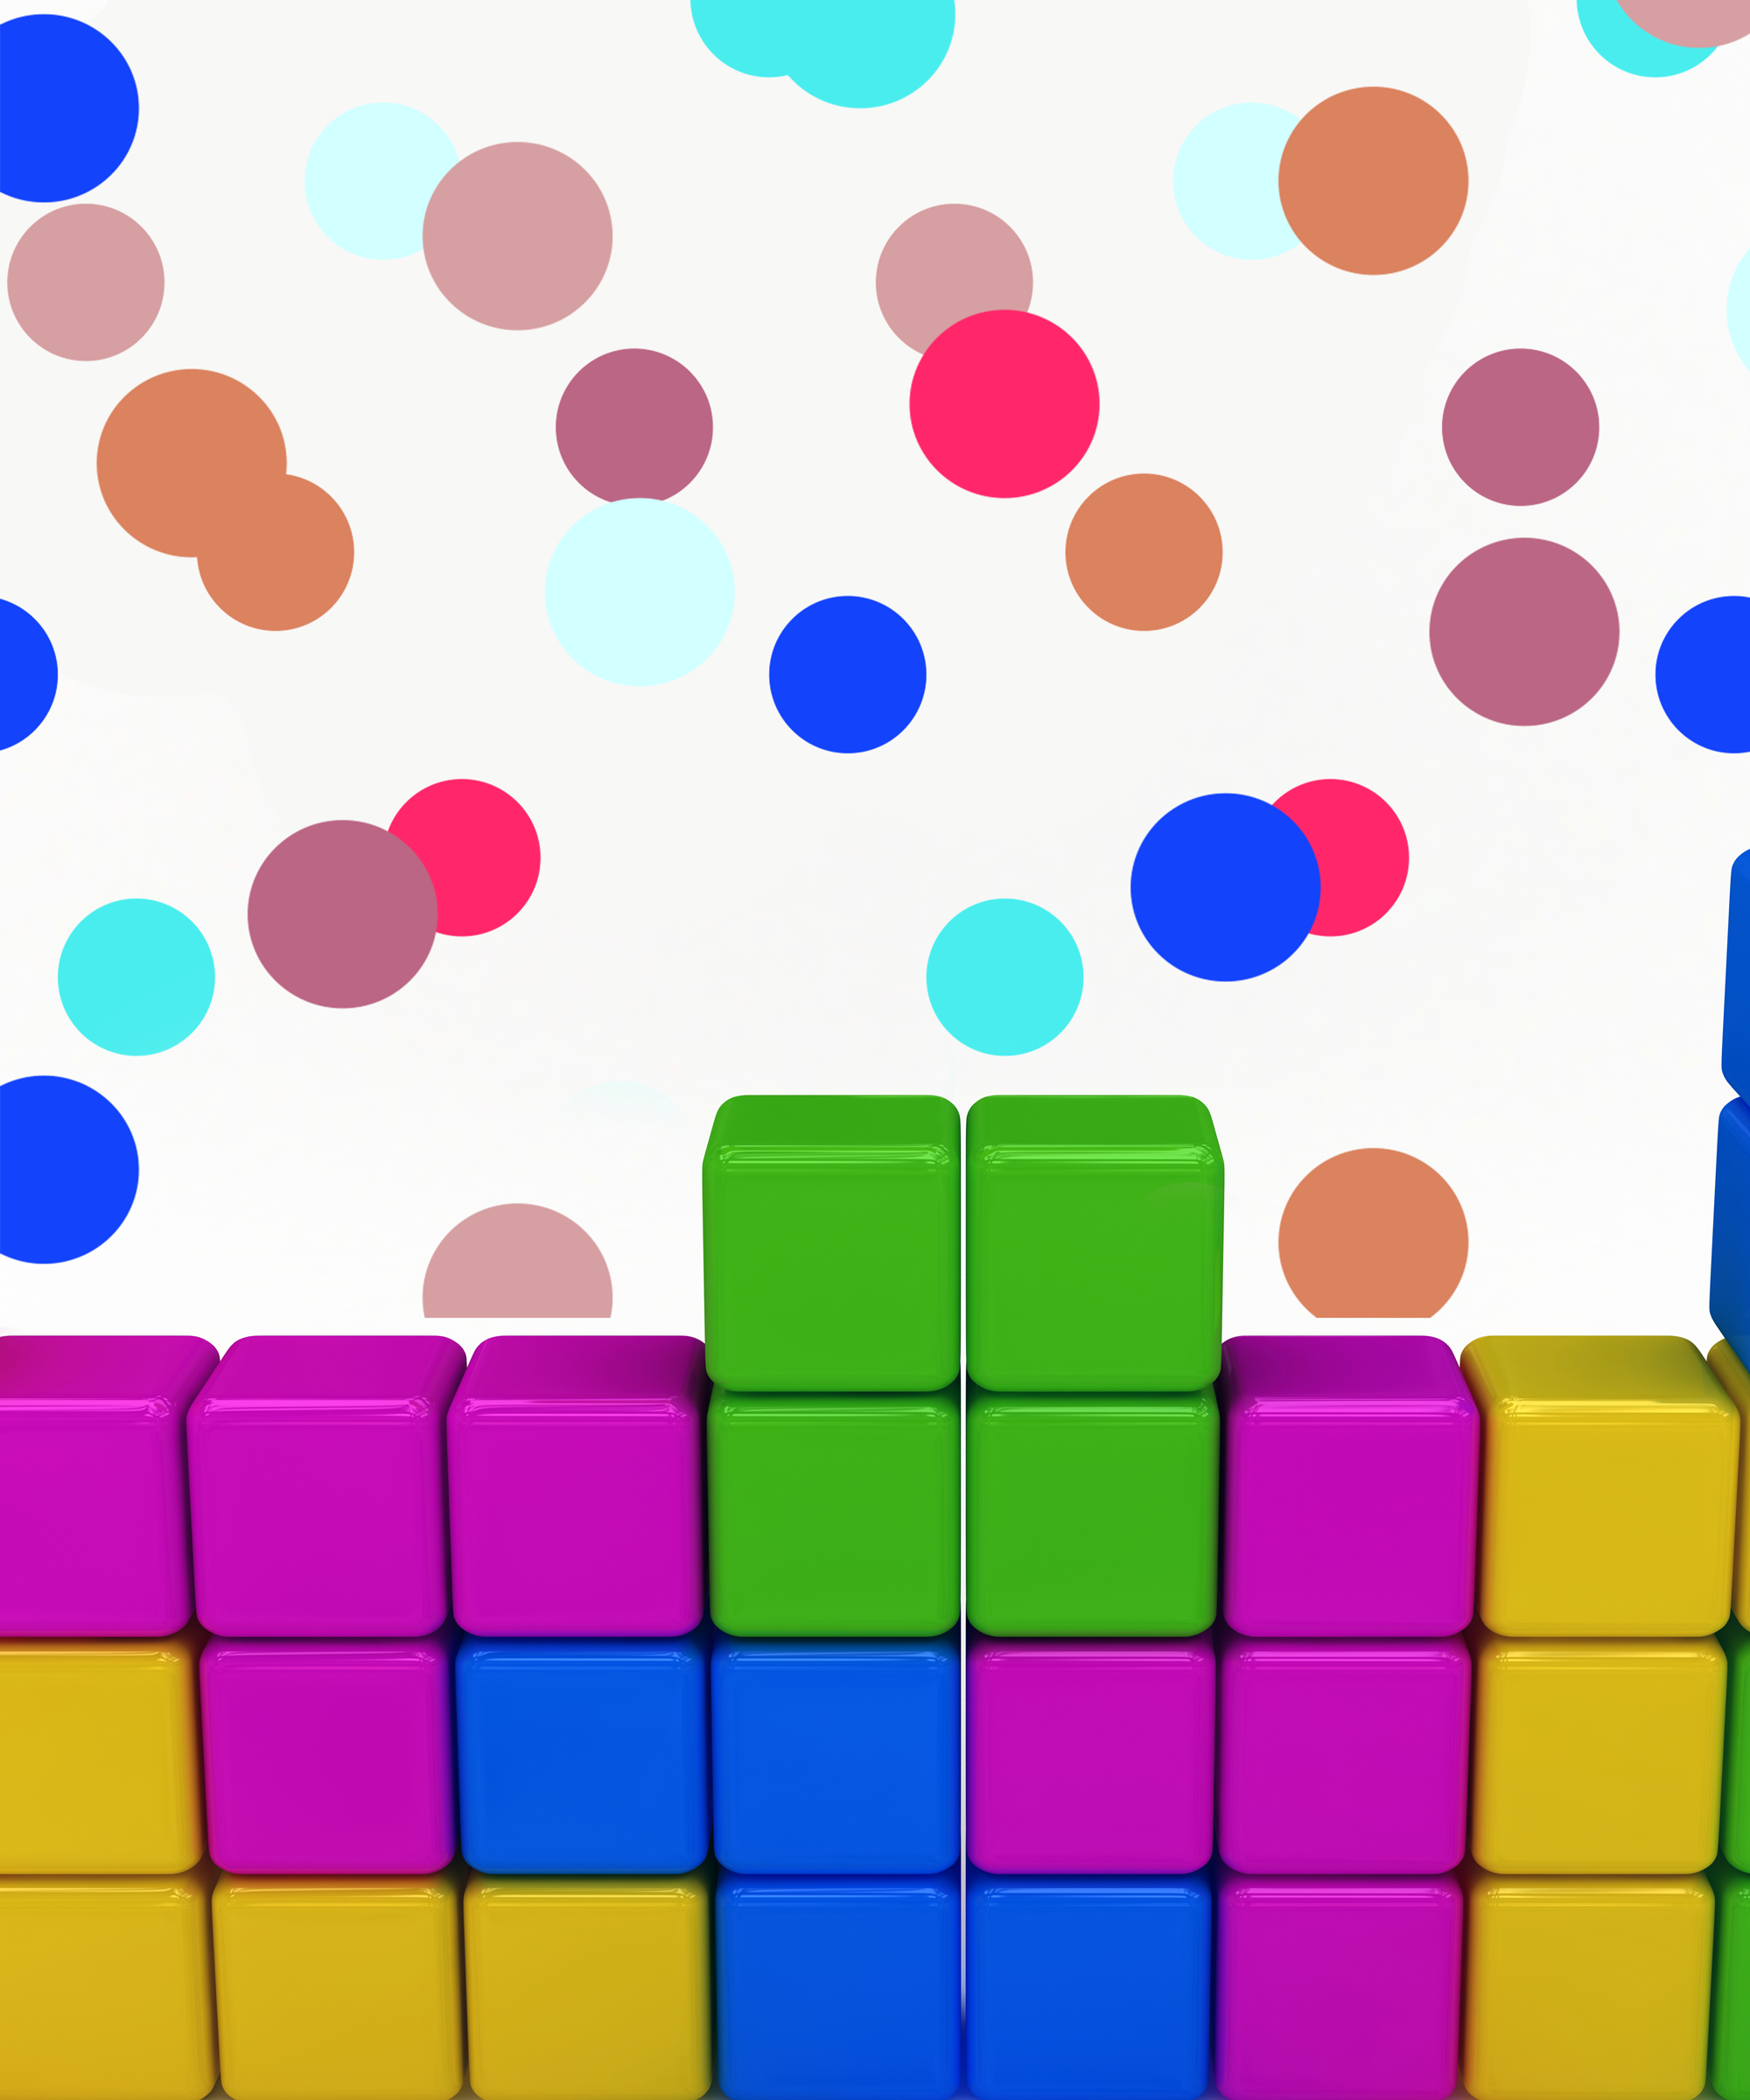 Playing Tetris can reduce onset of PTSD after trauma